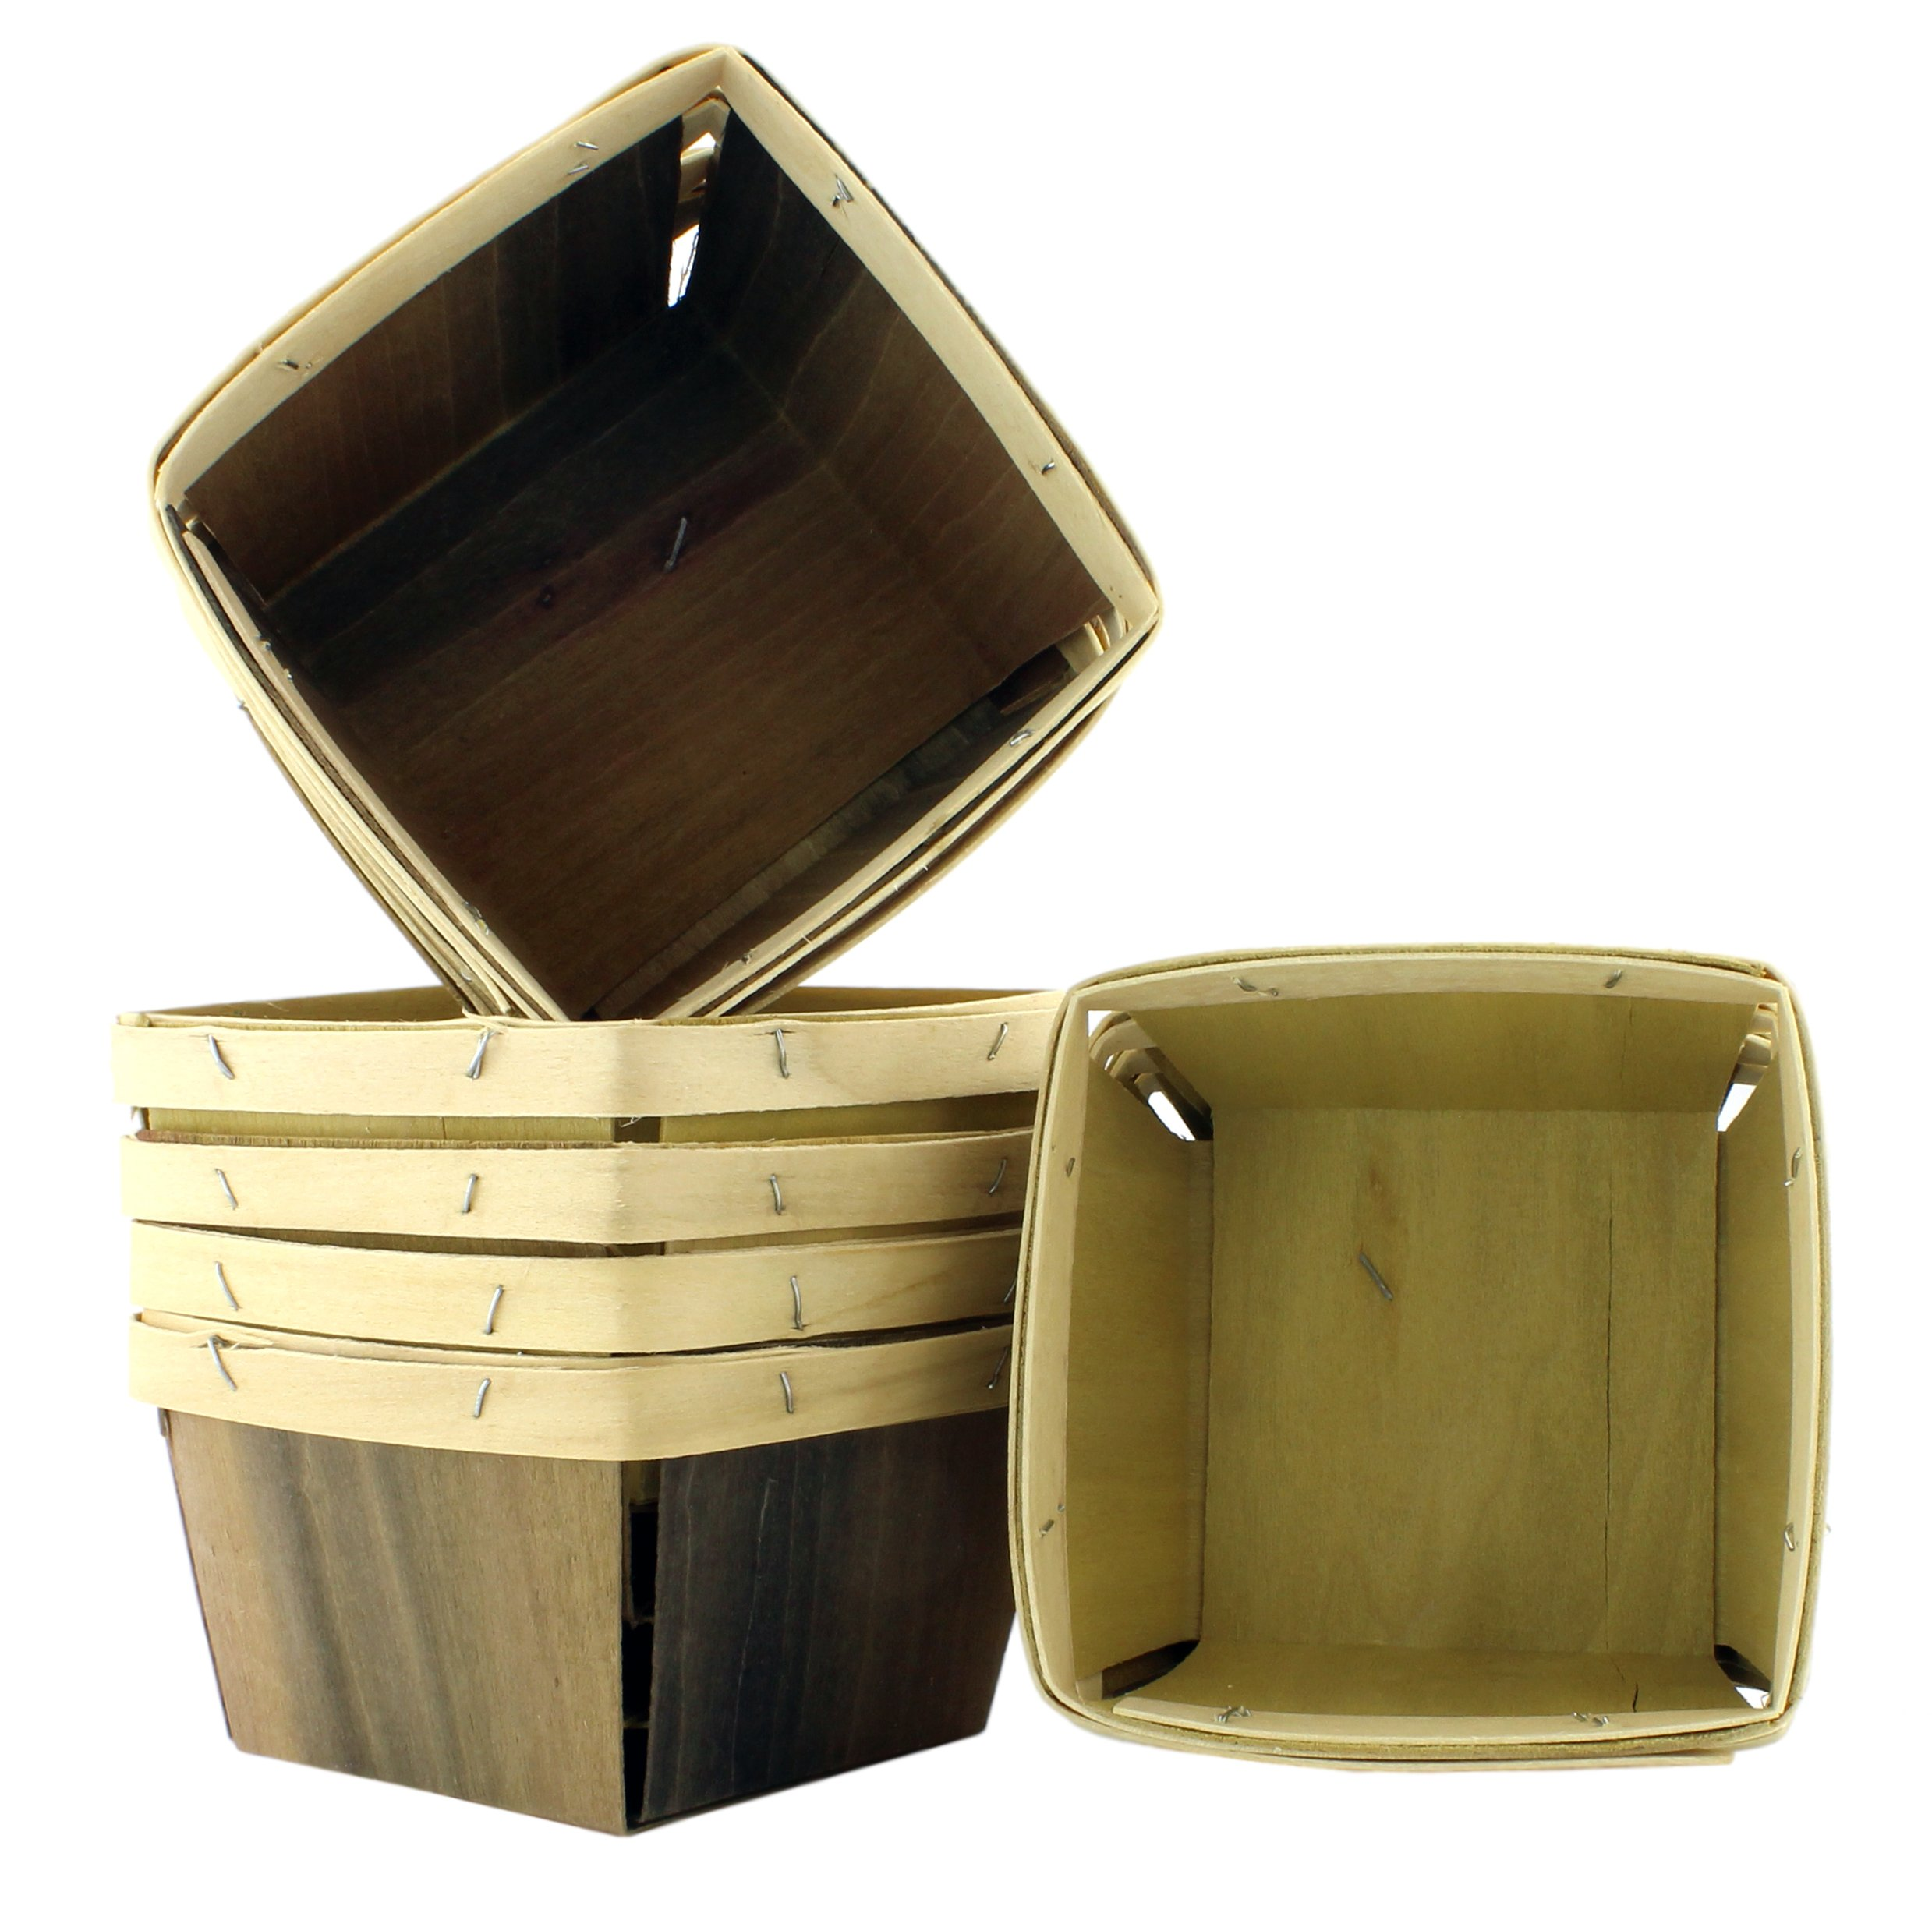 """One Quart Wooden Berry Baskets (8-Pack); 5.5"""" Square Vented Wood Boxes for Fruit Picking or Arts & Crafts"""